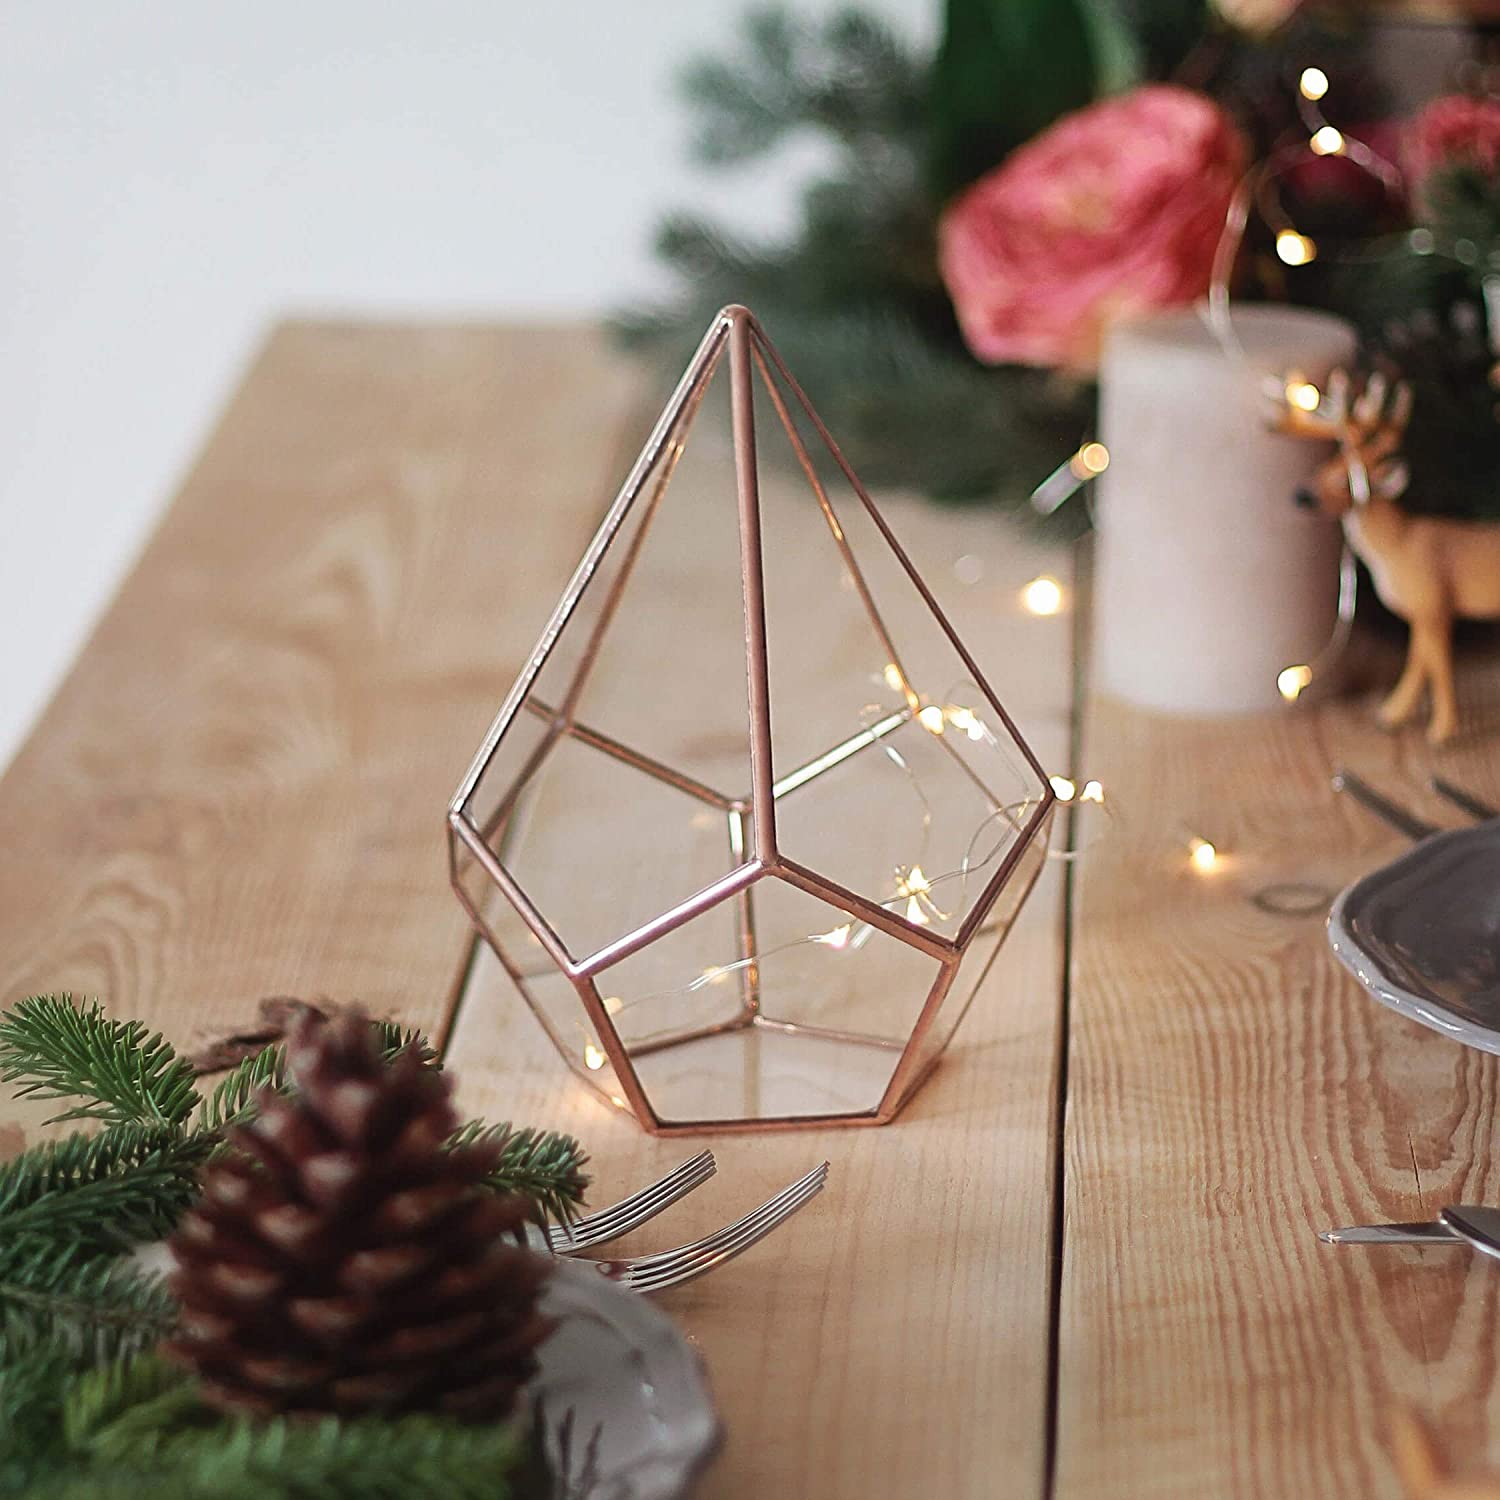 Waen Holiday Table Centerpiece Collection Small Glass Geometric Centerpiece - Teardrop (Copper, Silver, Black)